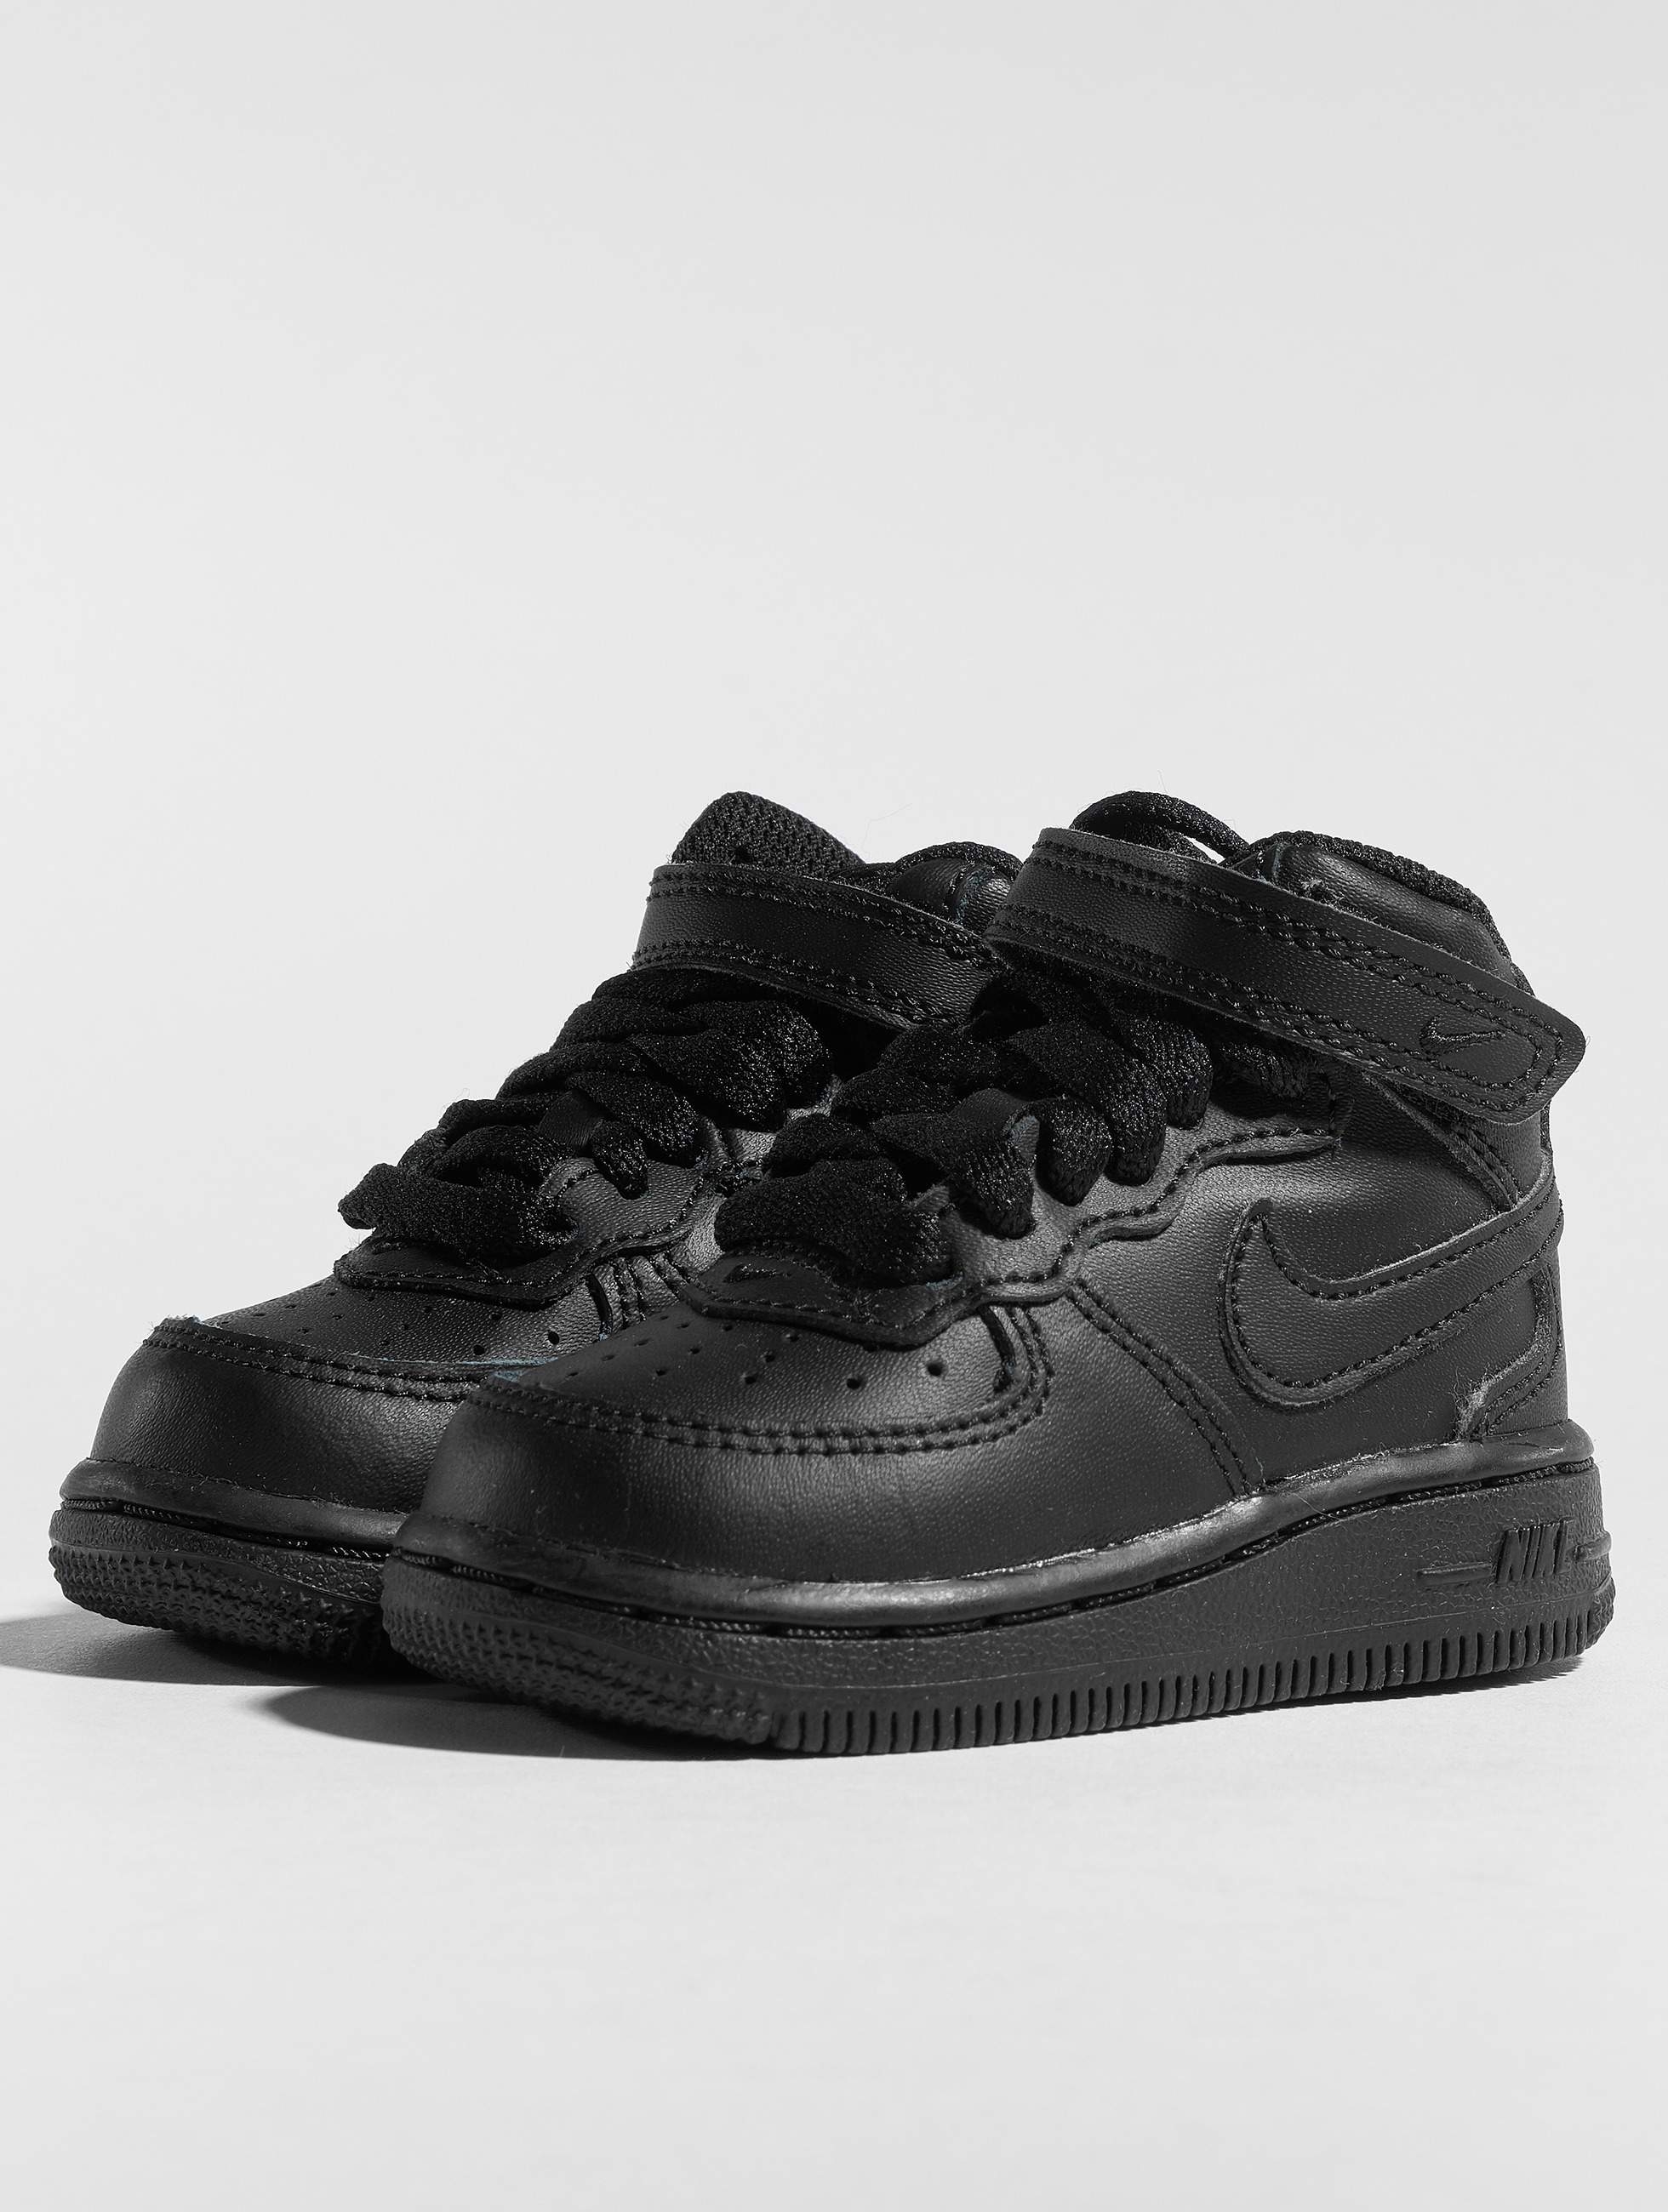 1351ae8a3ea Nike schoen / sneaker Air Force 1 Mid TD in zwart 540730